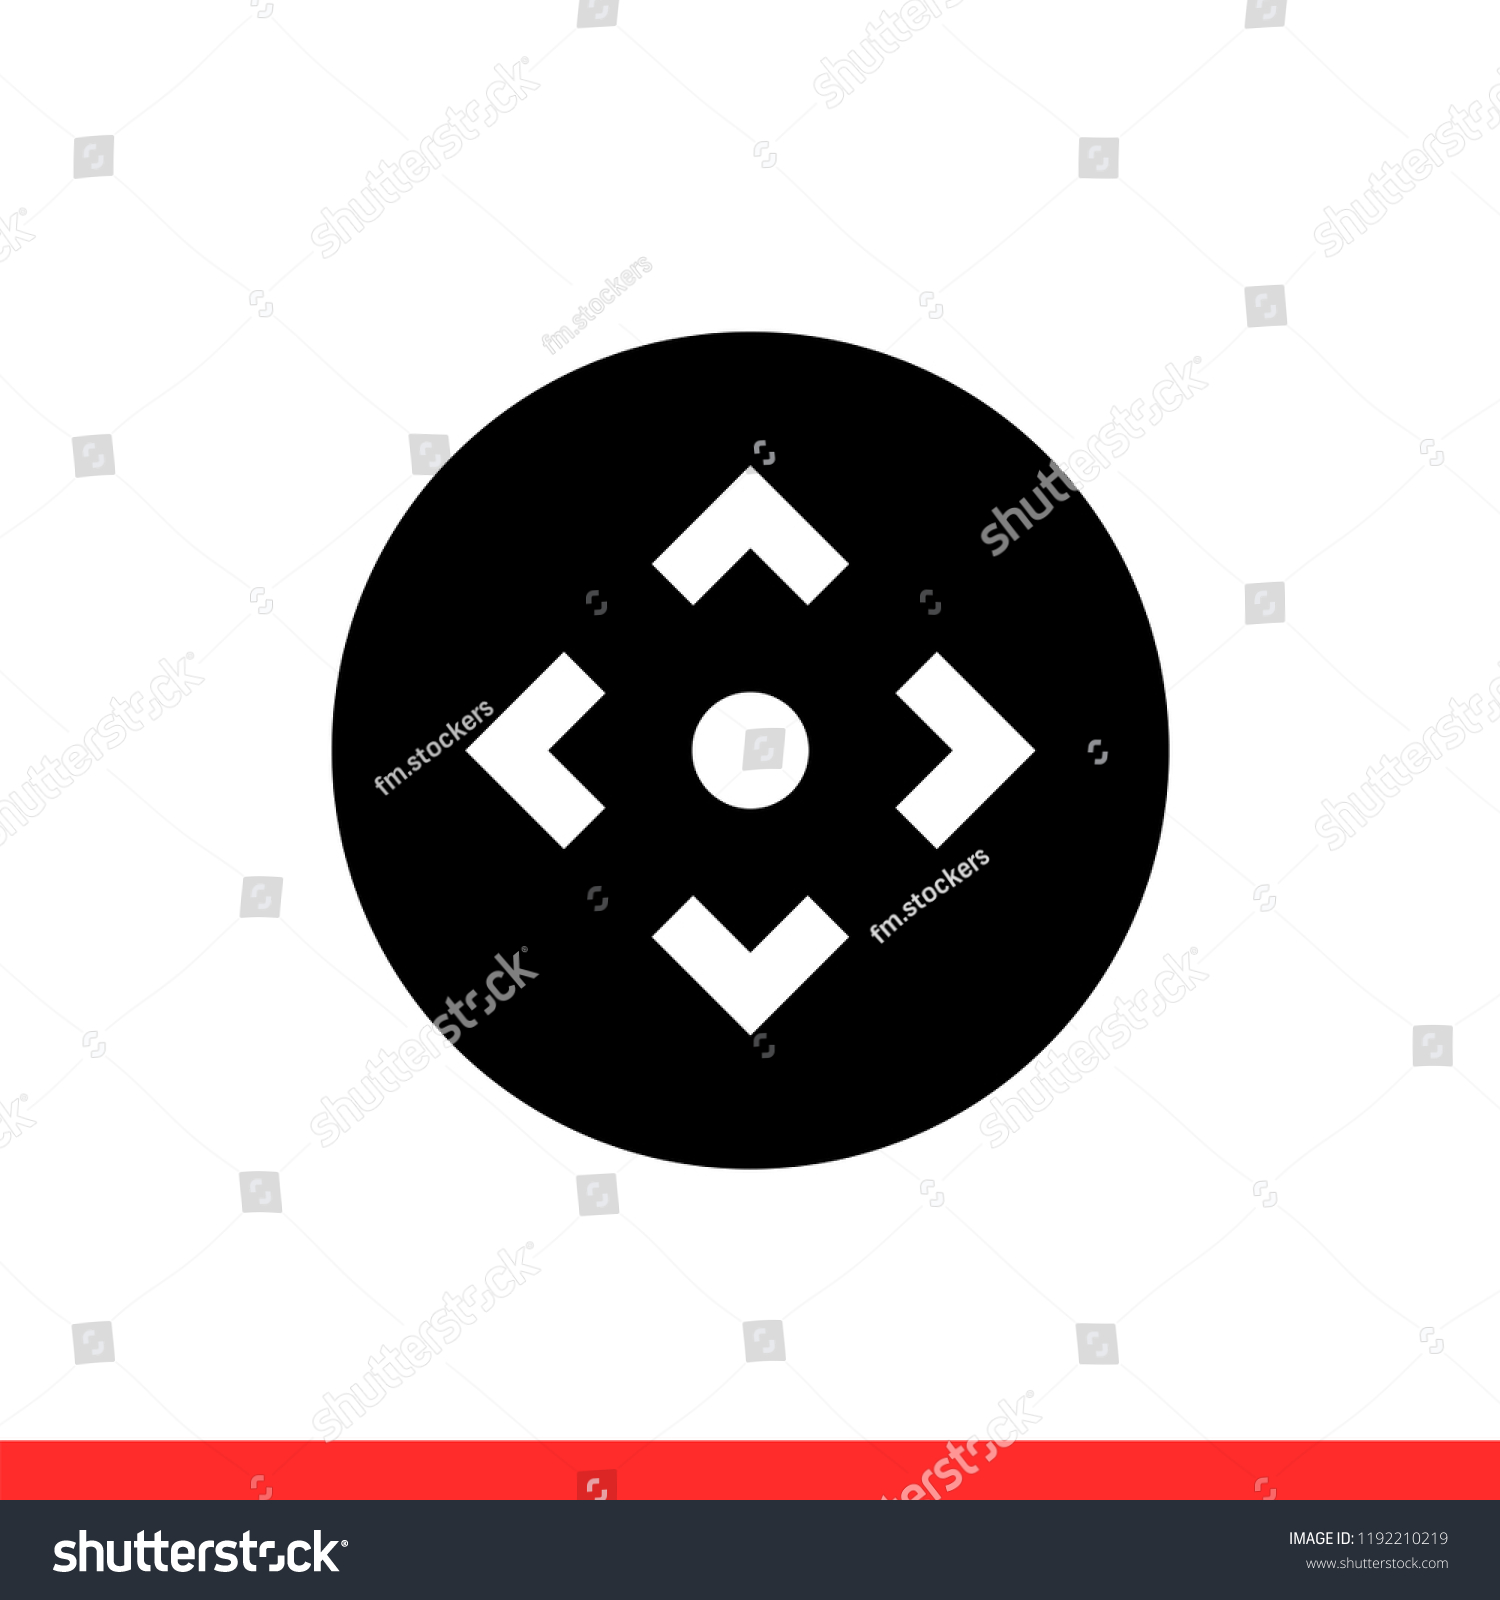 hight resolution of camera control vector icon remote symbol simple flat design for web or mobile app